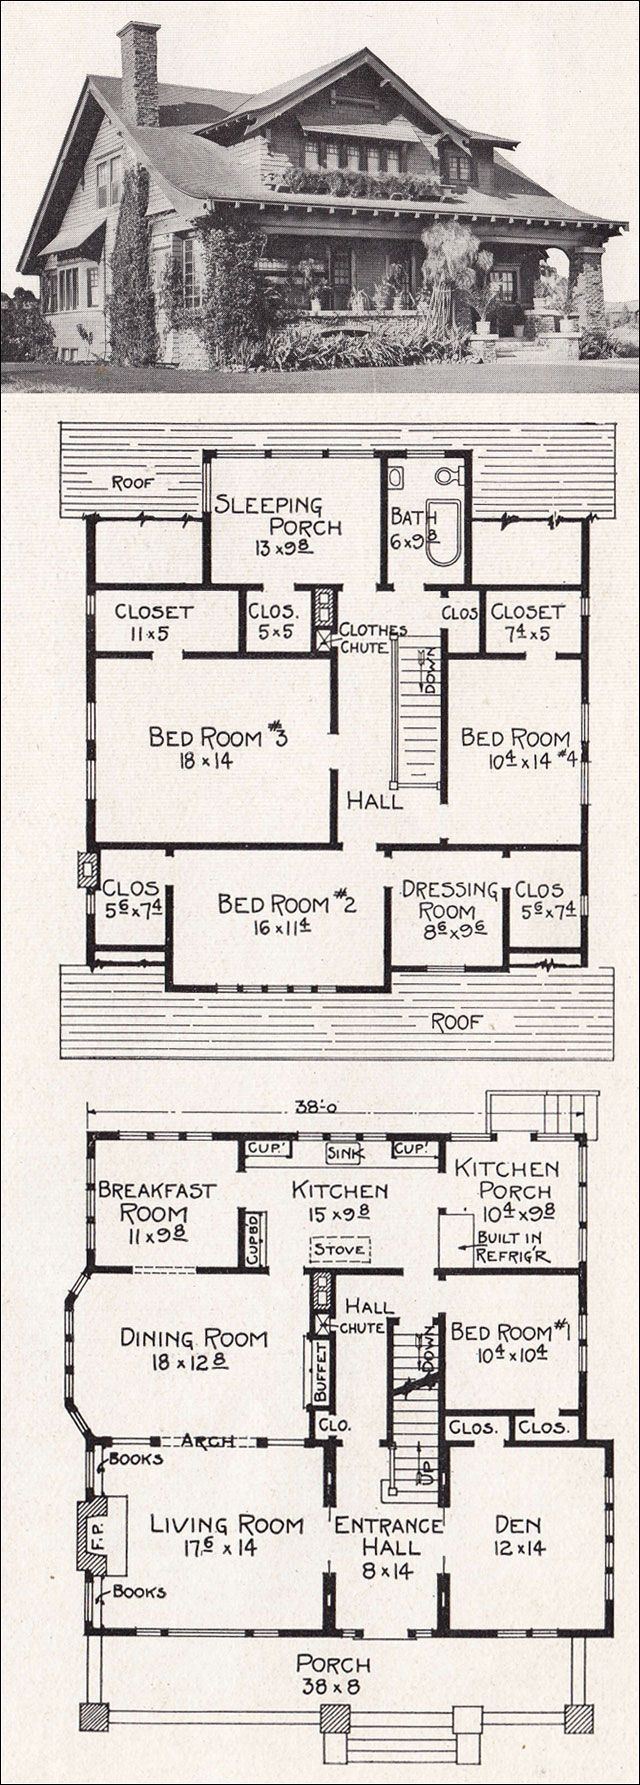 Vintage bungalow house plan architectural illustrations for One story bungalow style house plans